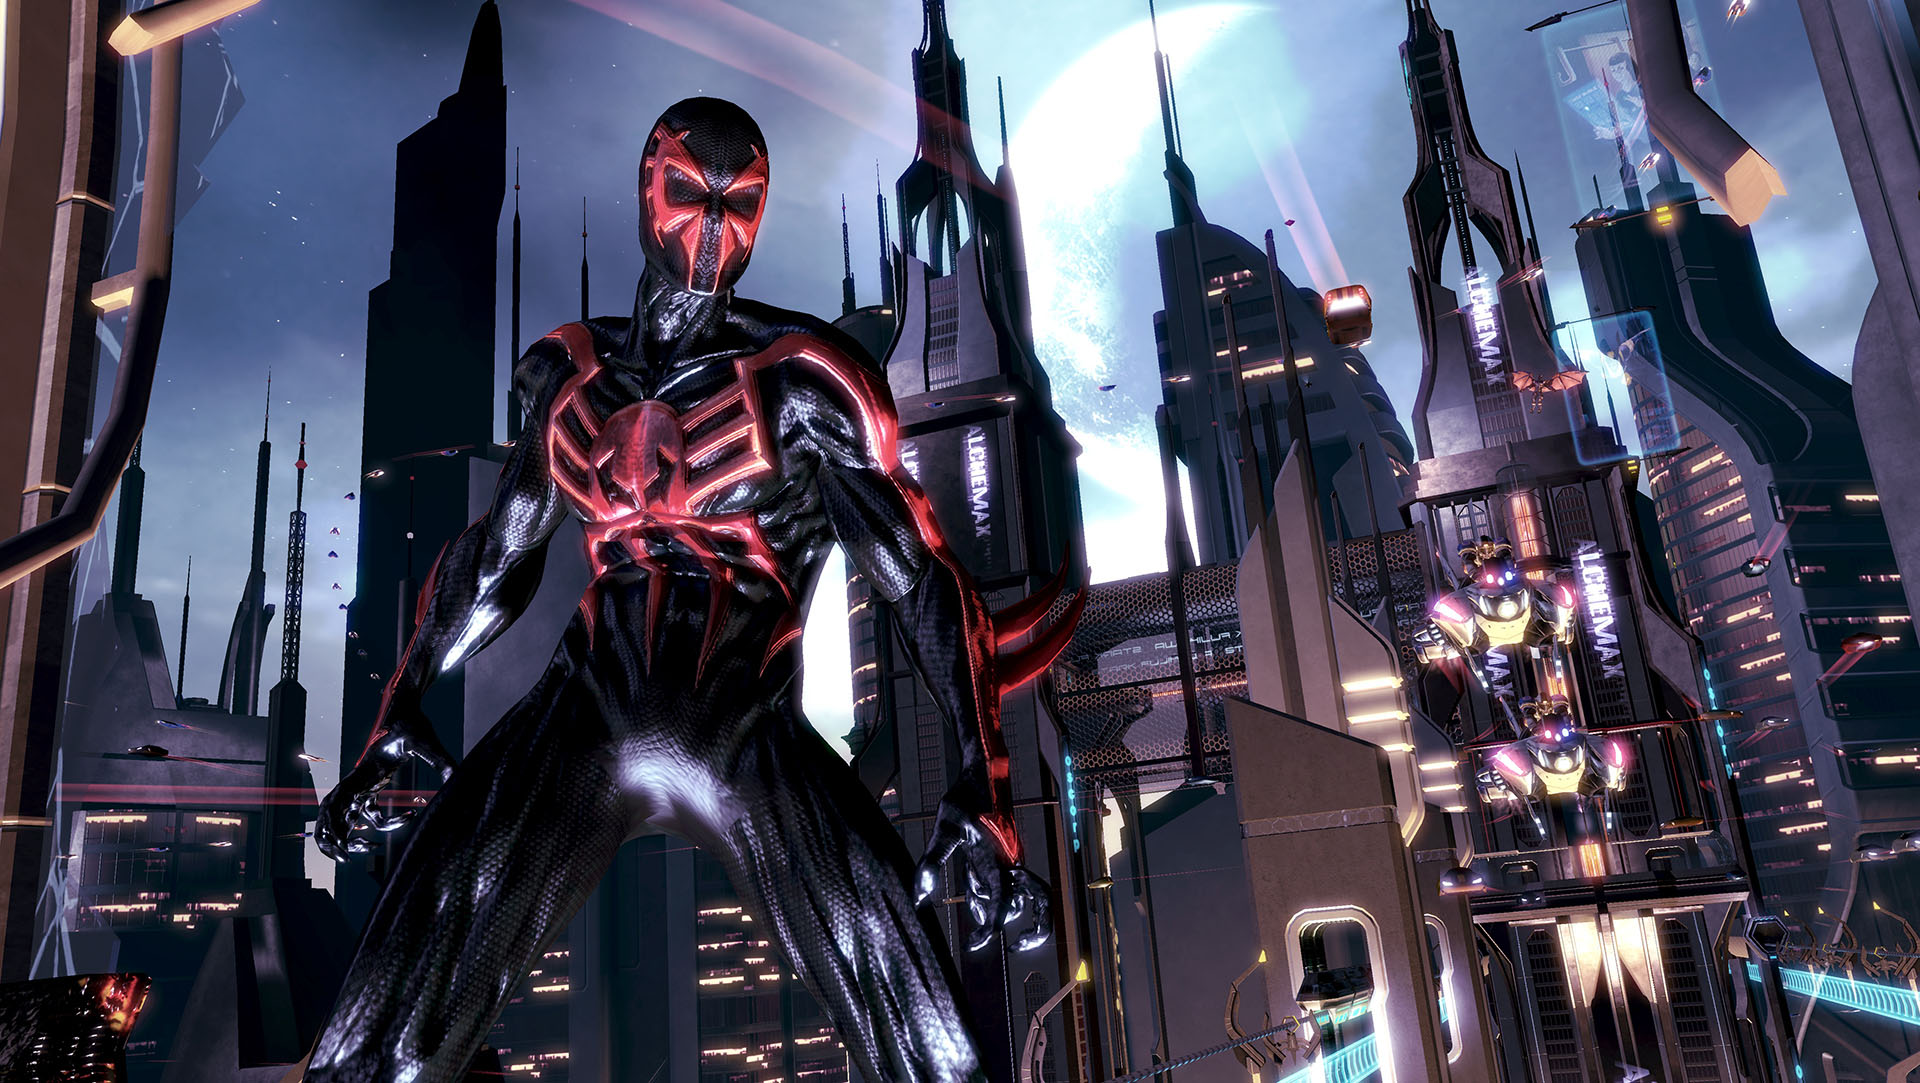 10 Best Spider Man 2099 Wallpaper Full Hd 1080p For Pc: Spider-Man: Shattered Dimensions Full HD Wallpaper And